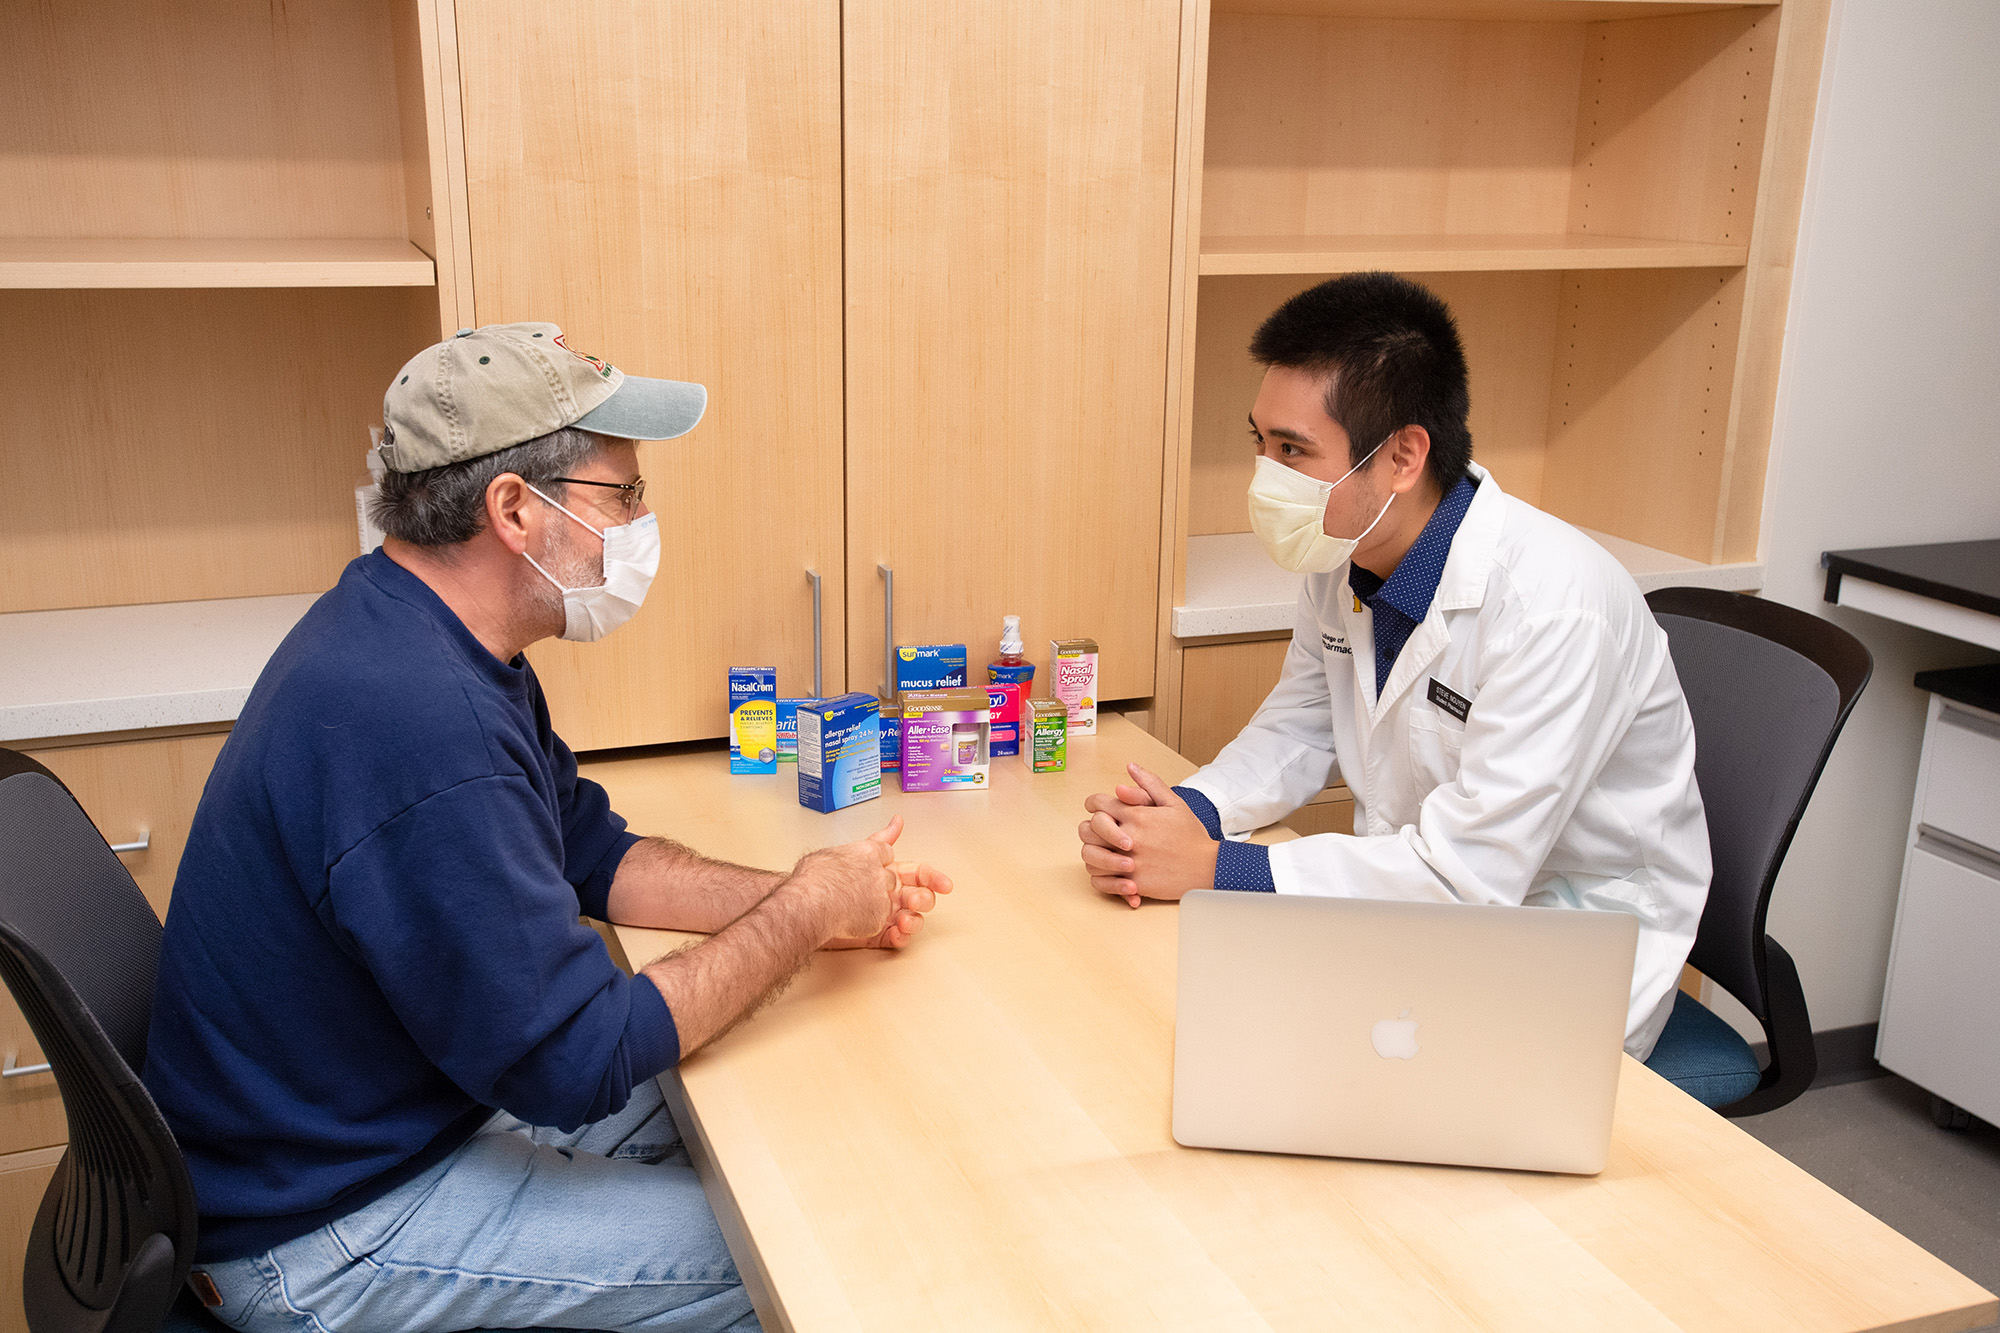 a University of Iowa pharmacy student meets with a simulated patient in the Pharmacy Practice Learning Center in the College of Pharmacy Building